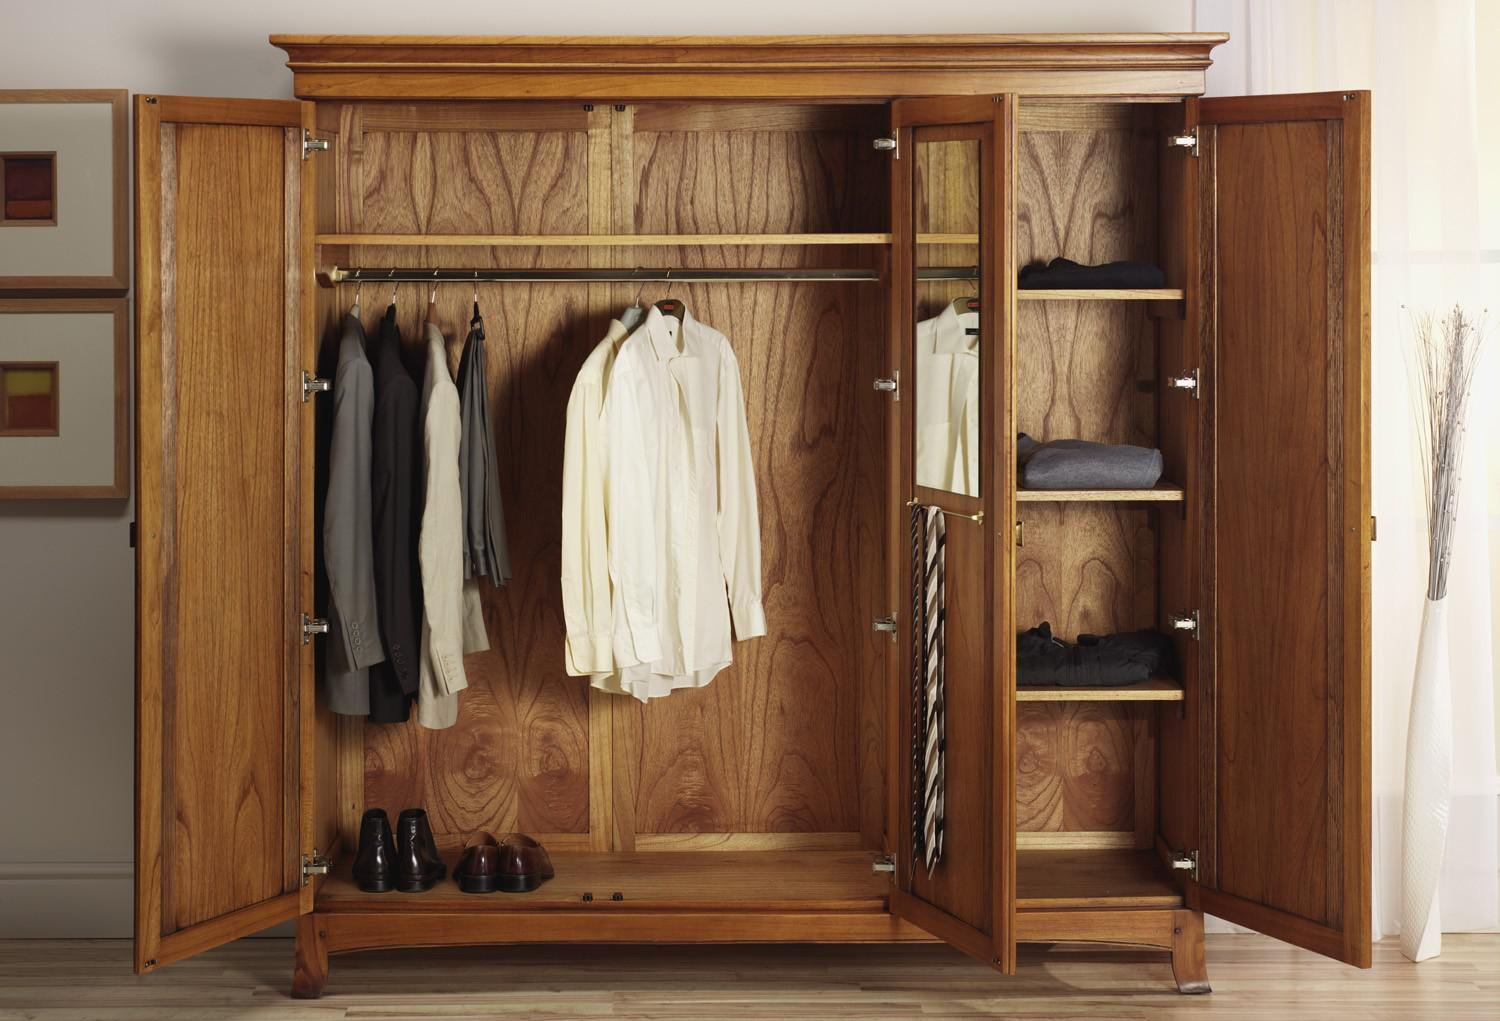 Armoire Furniture | Unfinished Furniture Armoire | Furniture Wardrobe Closet Armoire